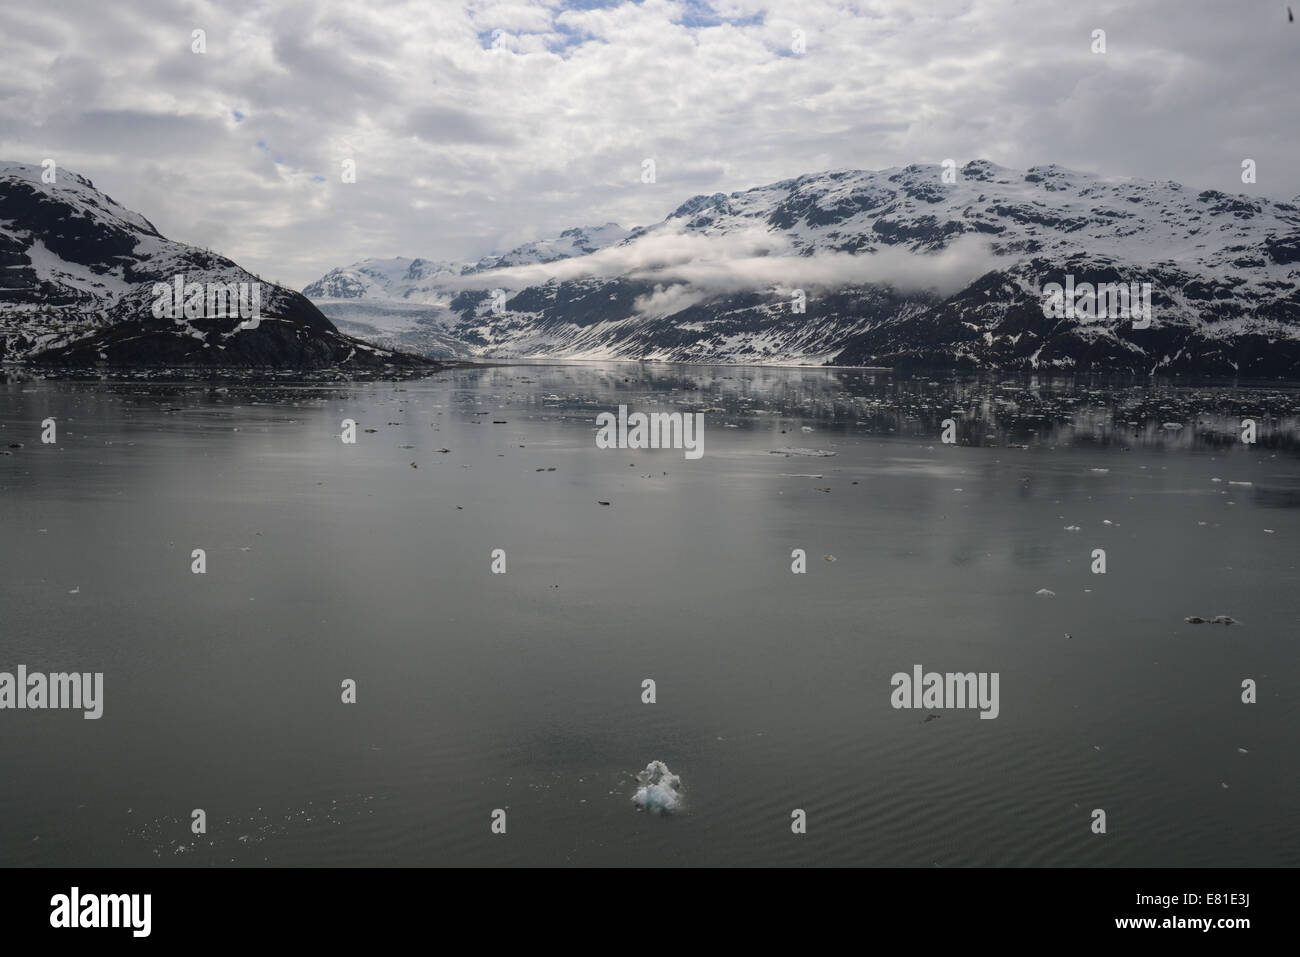 Ice bergs and glaciers in Glacier Bay, Alaska, USA.  Water and ice landscapes with scenic views and close up water - Stock Image